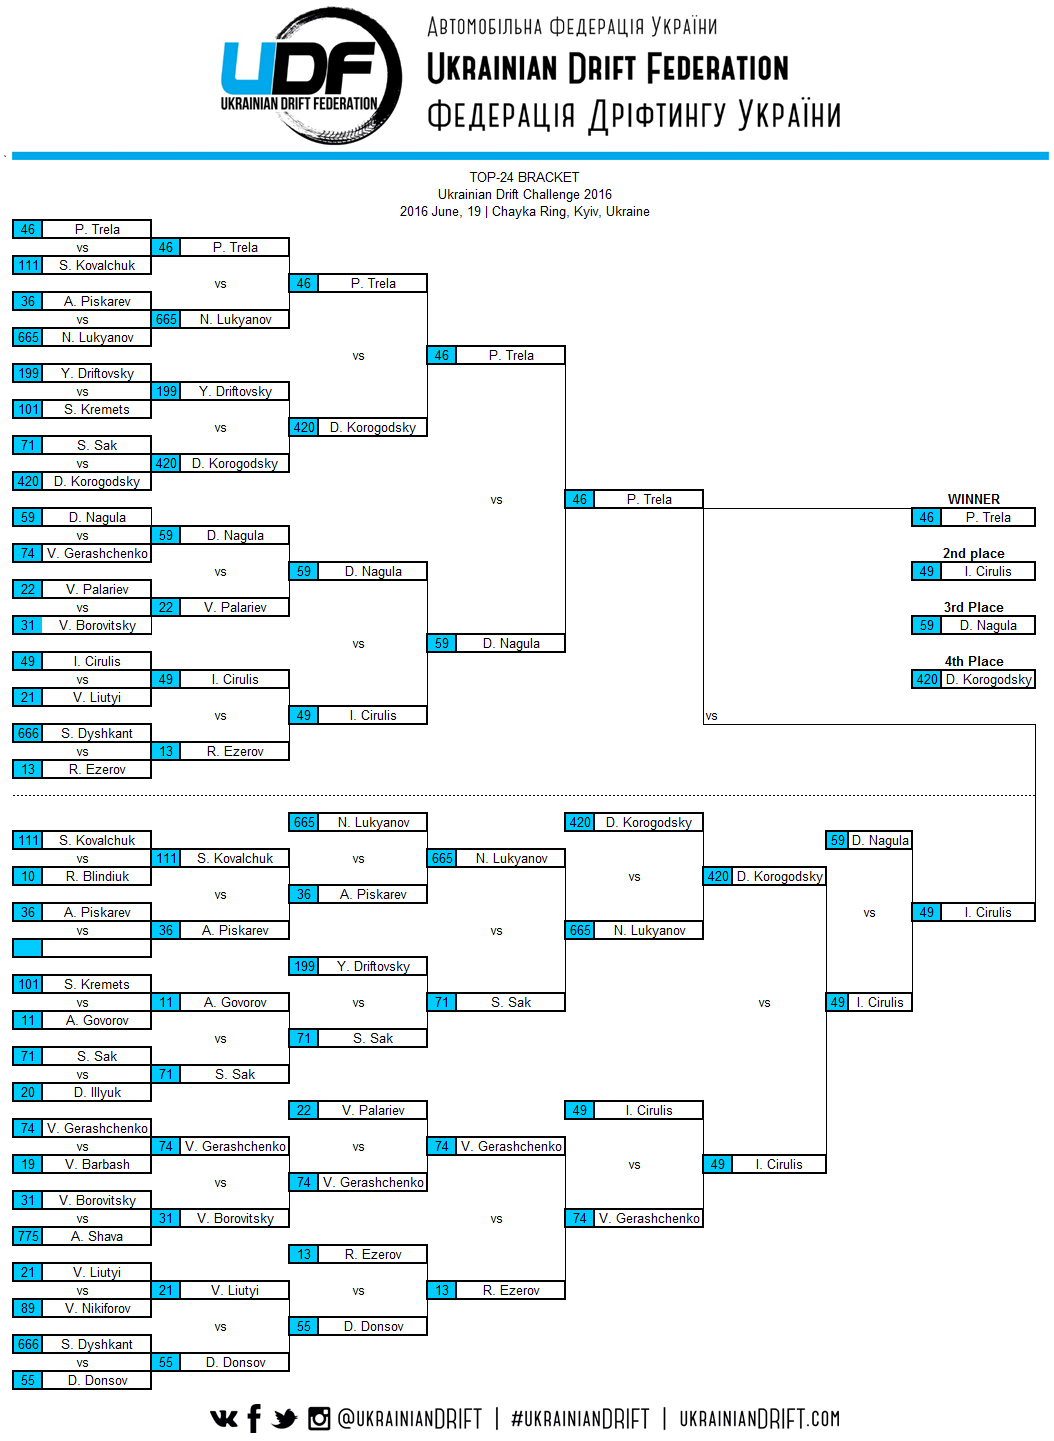 udc2016bracket full